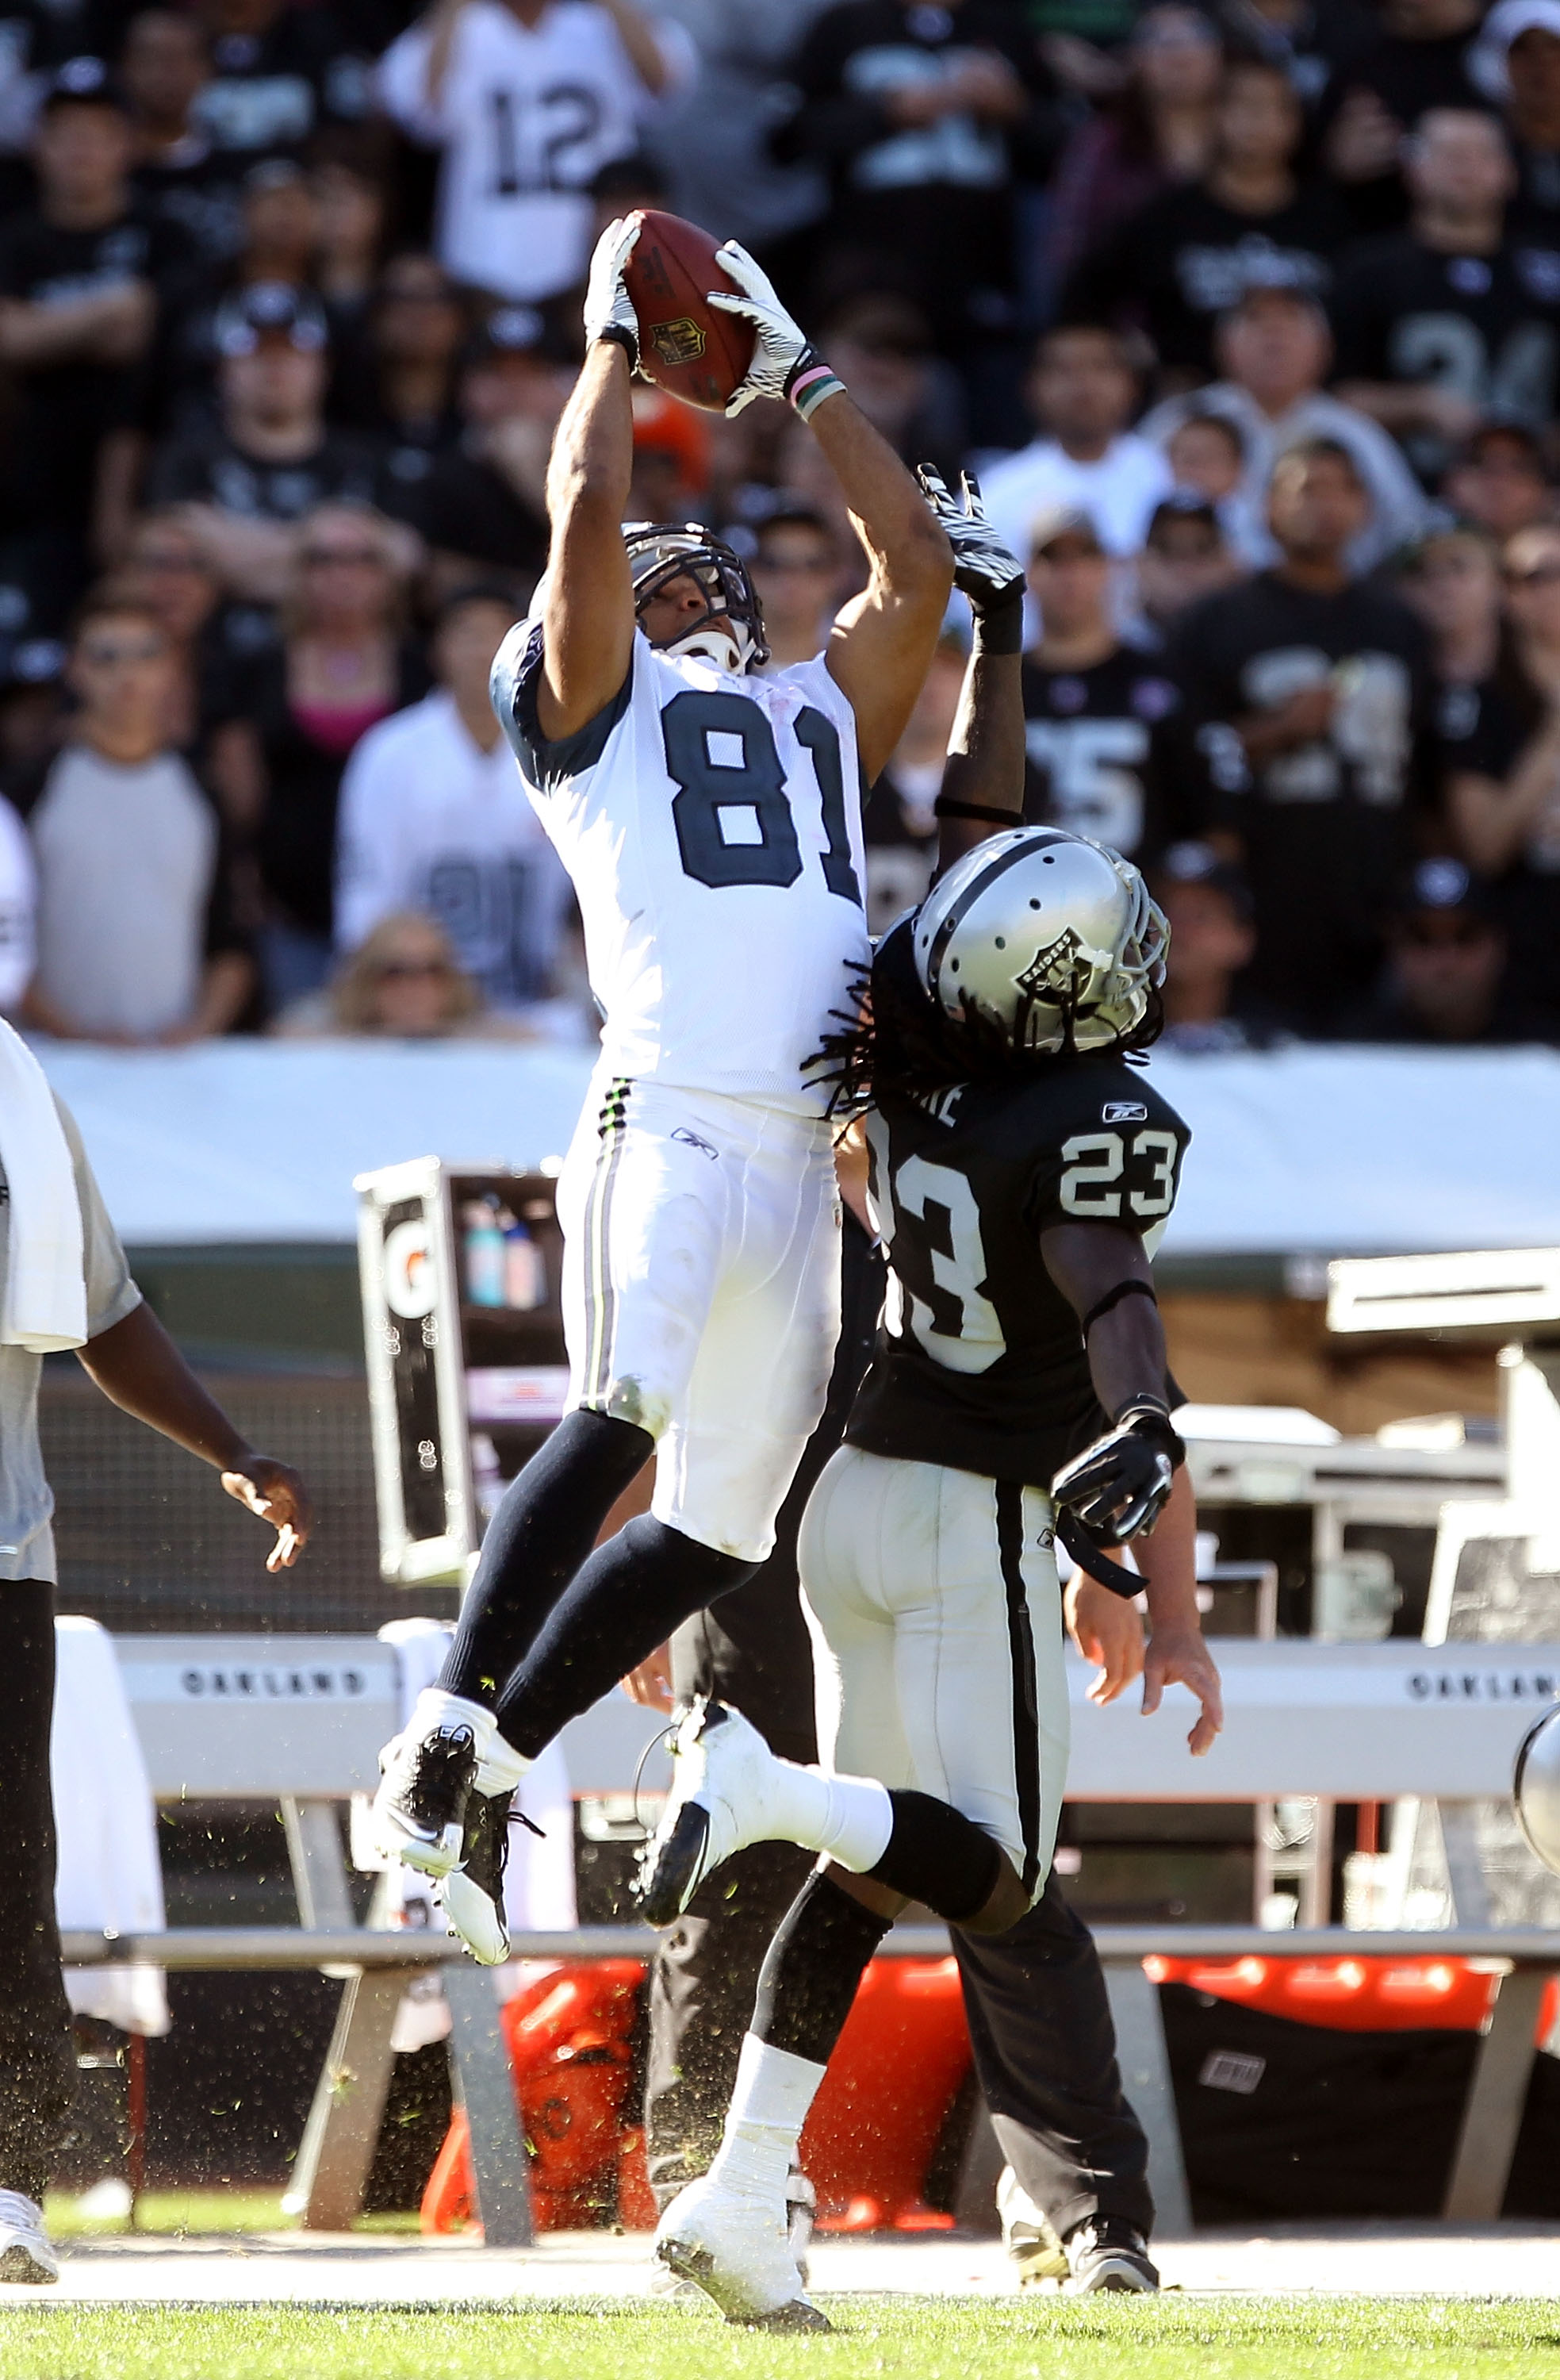 OAKLAND, CA - OCTOBER 31:  Golden Tate #81 of the Seattle Seahawks makes a leaping catch over Jeremy Ware #23 of the Oakland Raiders at Oakland-Alameda County Coliseum on October 31, 2010 in Oakland, California.  (Photo by Ezra Shaw/Getty Images)